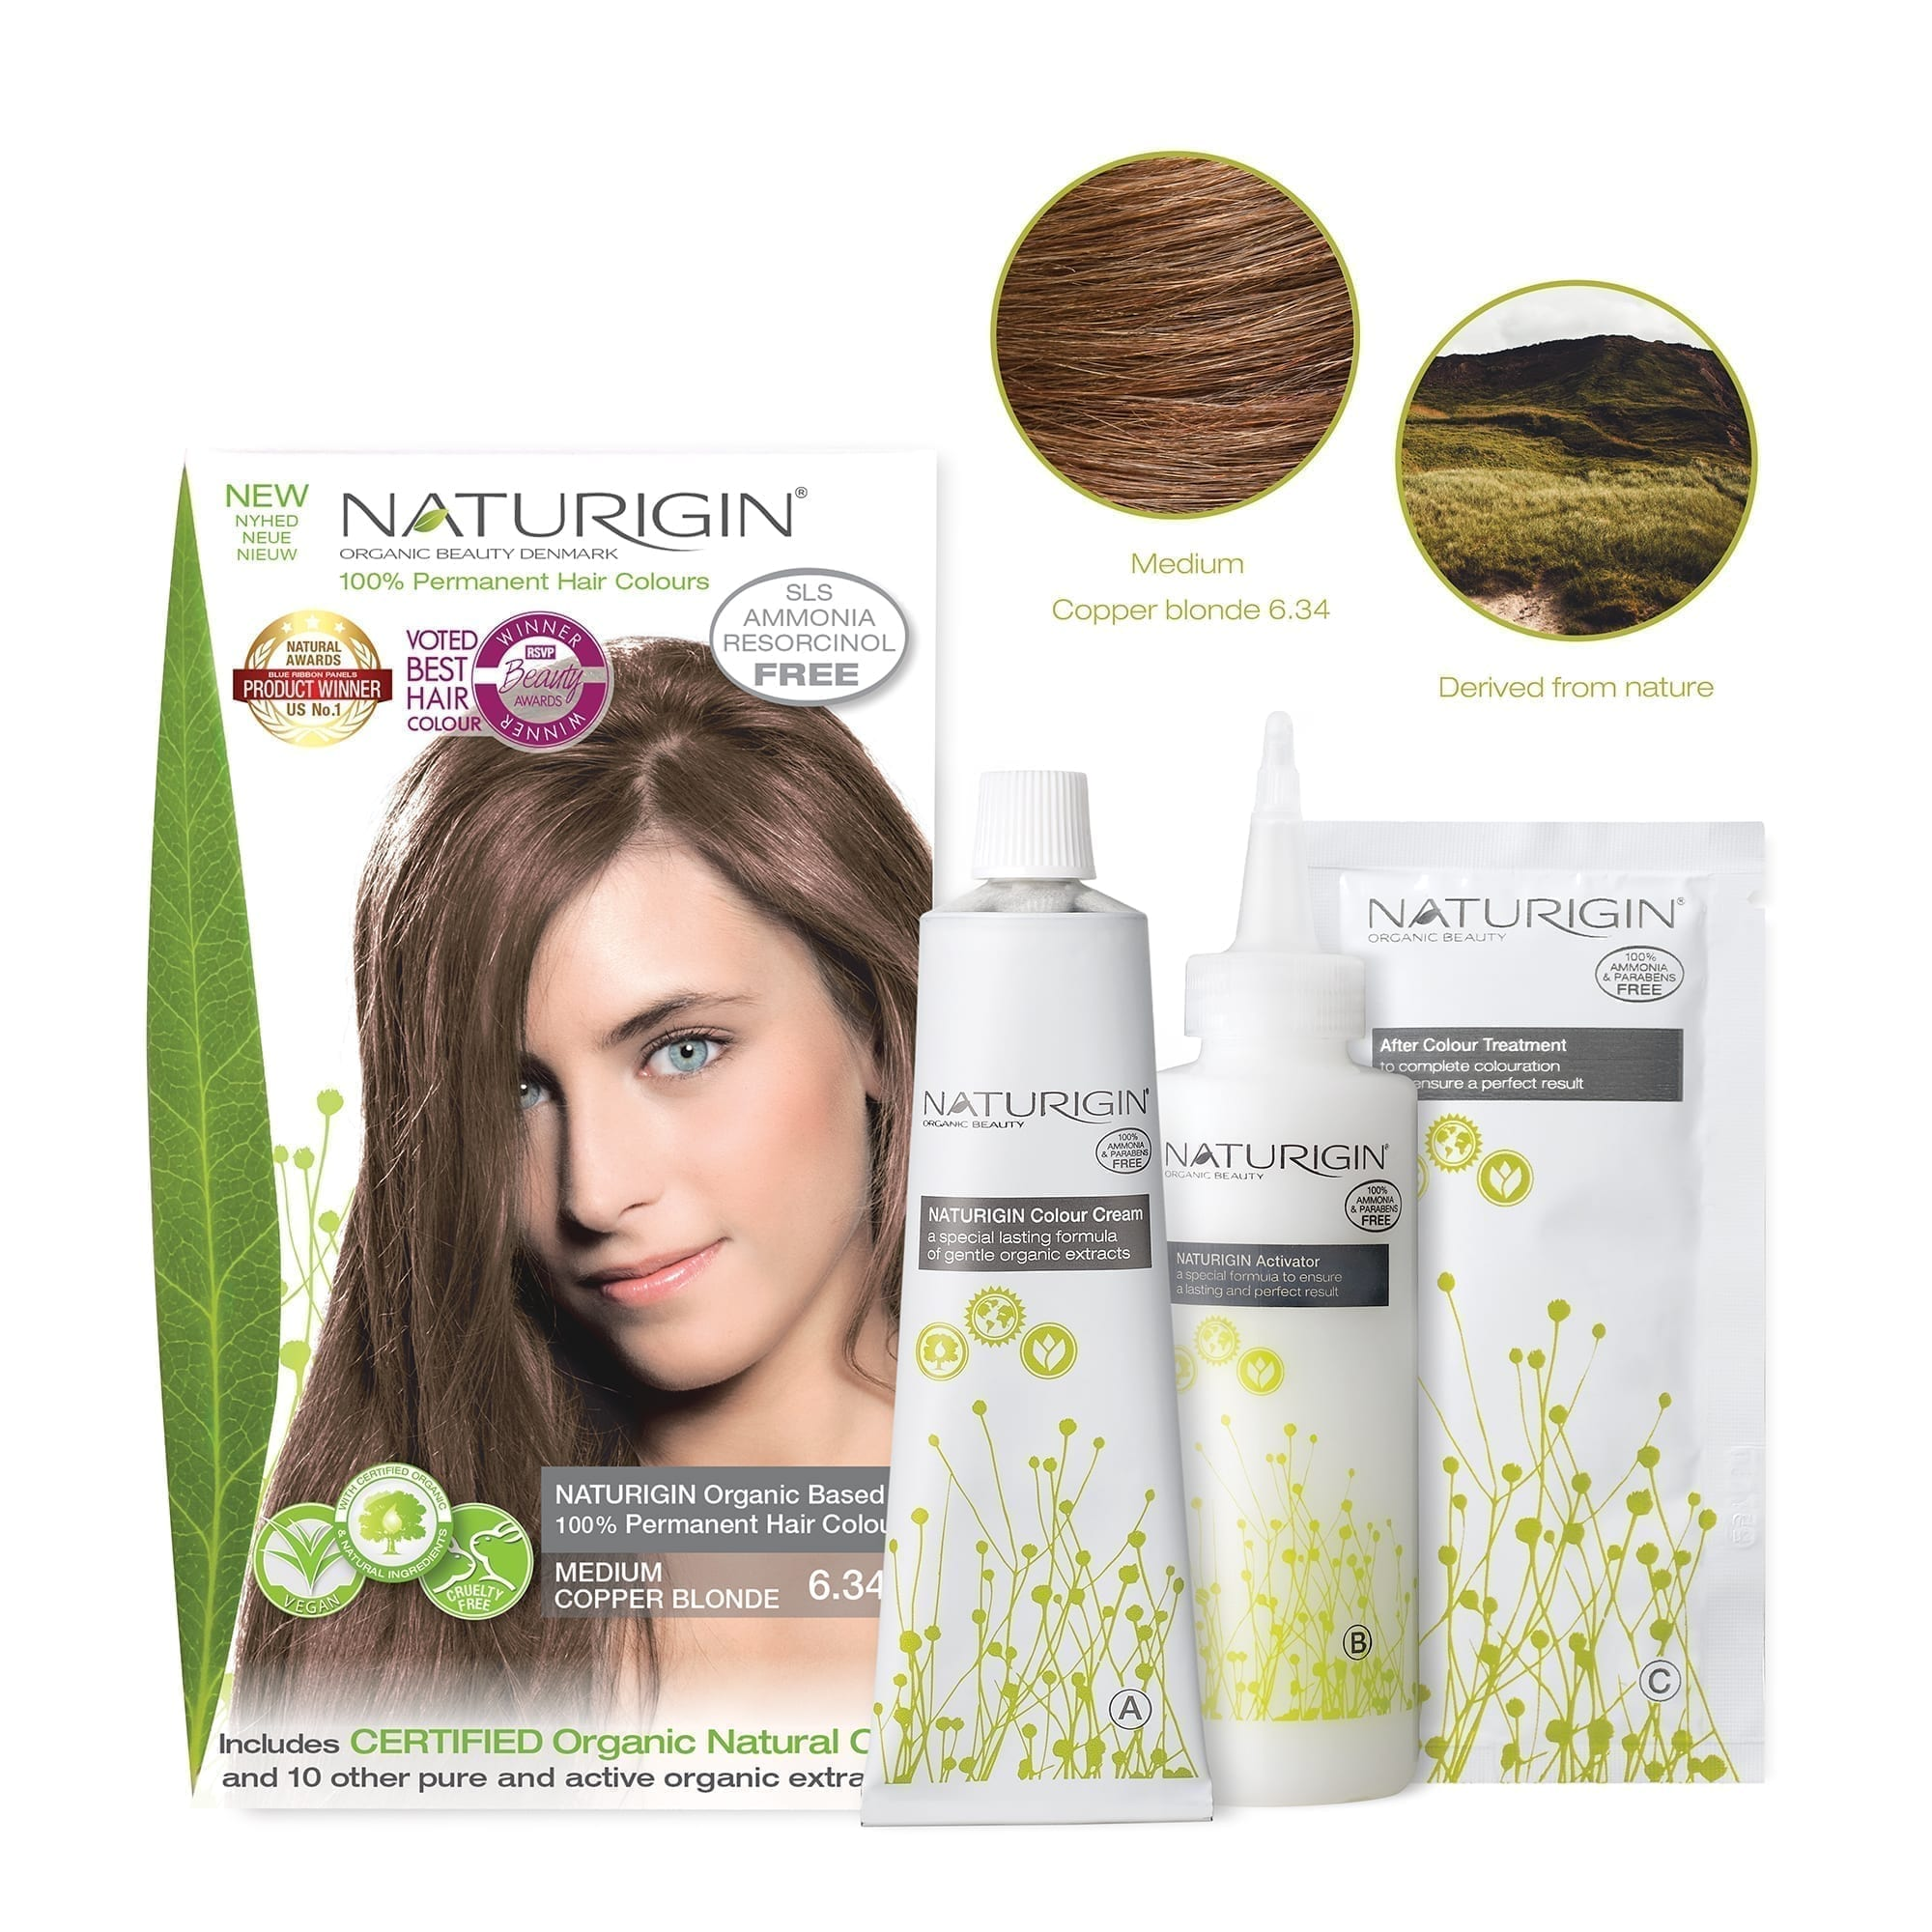 NATURIGIN-6.34-Medium copper blonde